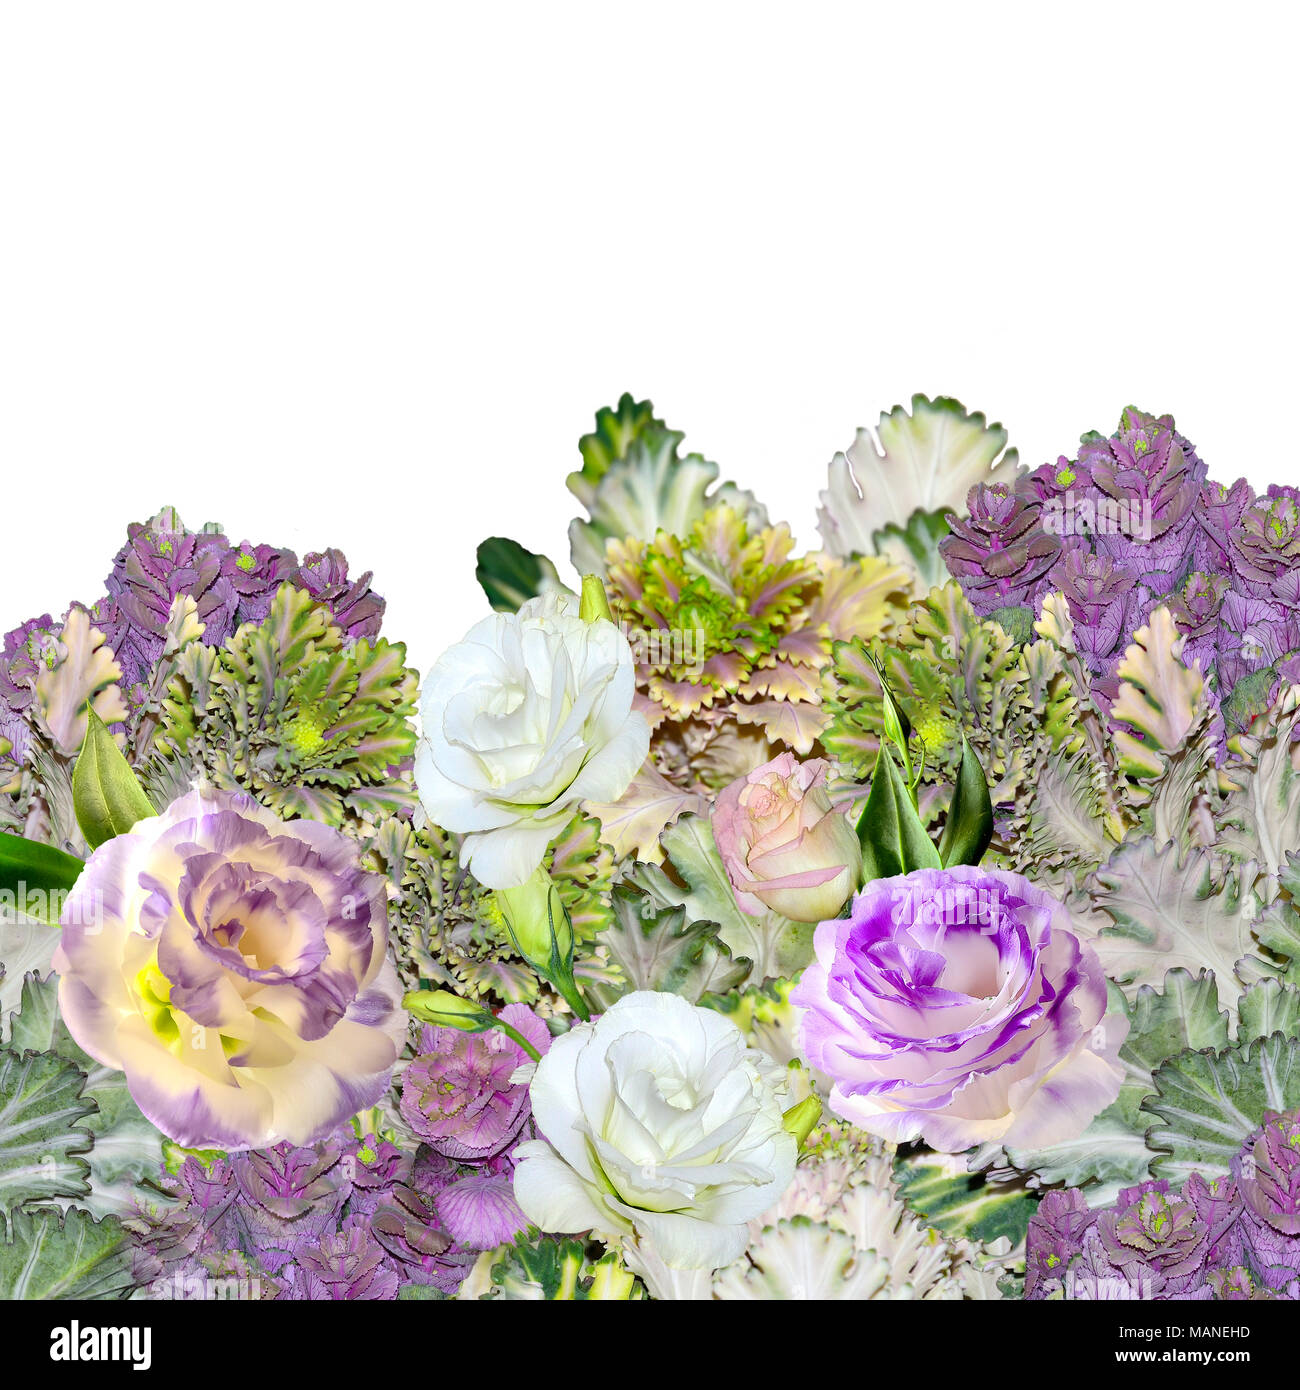 Floral border with bouquet of purple with white Eustoma (Lisianthus) flowers and ornamental cabbage - Brassica, or flowering kale isolated on a white  - Stock Image